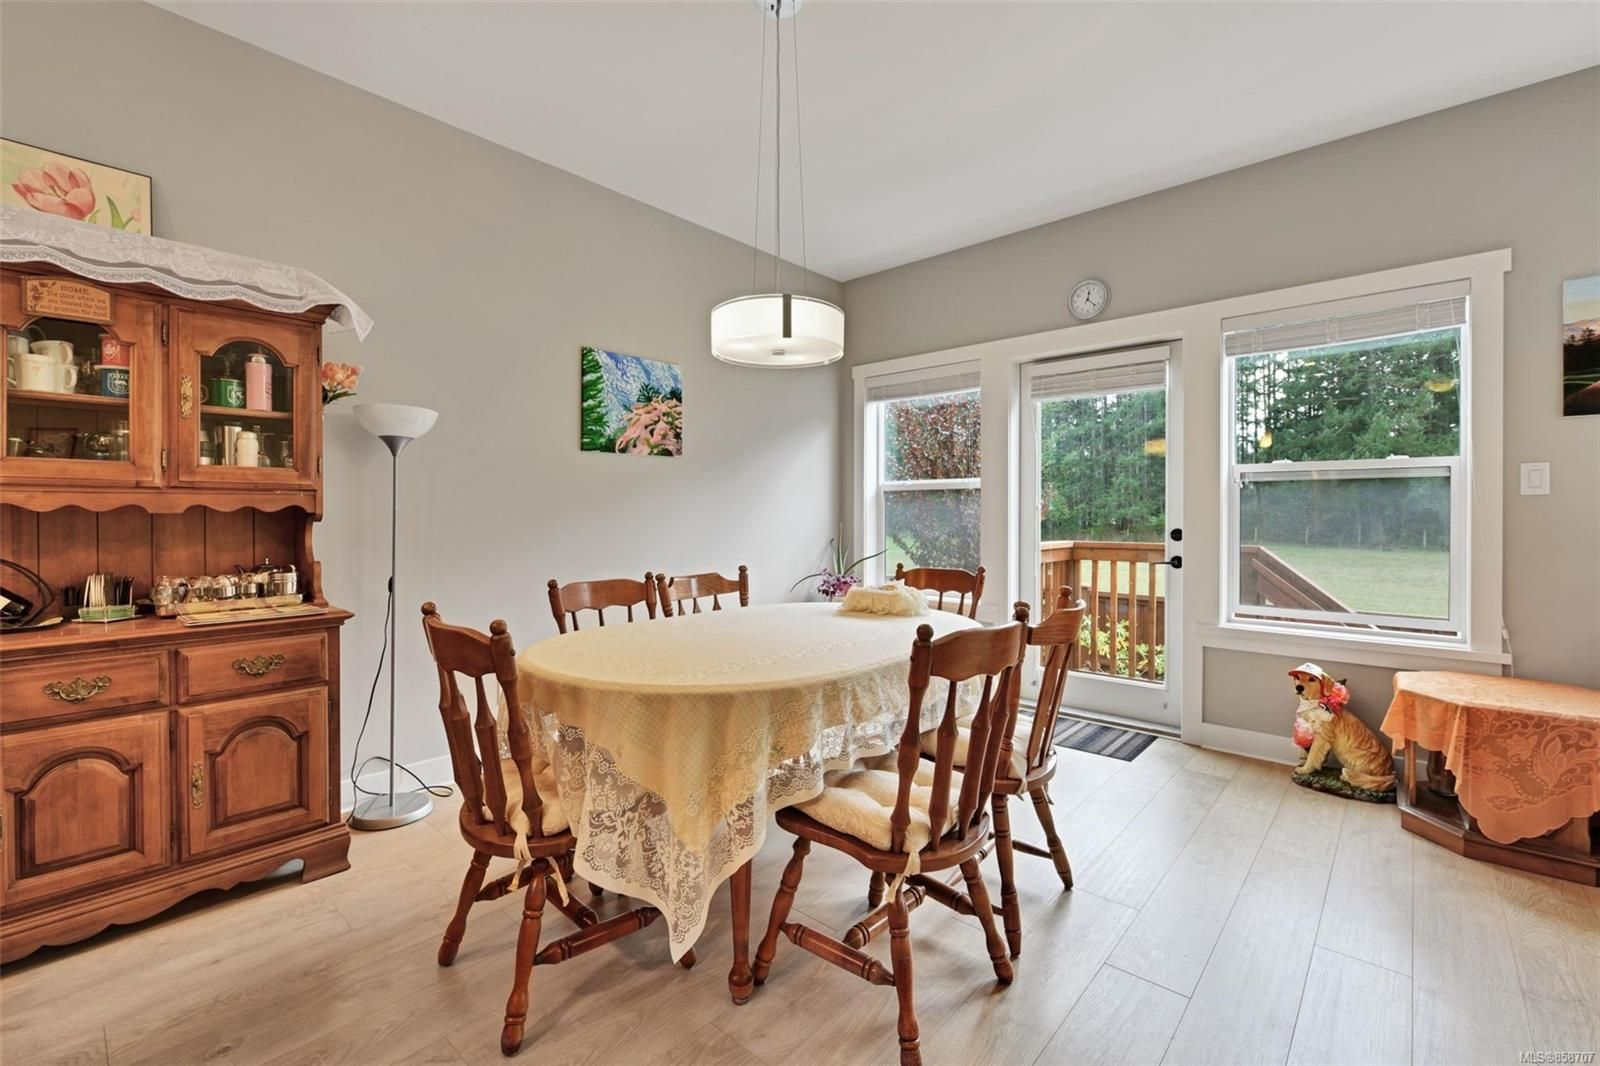 Photo 5: Photos: 1262 McLeod Pl in : La Happy Valley House for sale (Langford)  : MLS®# 858707